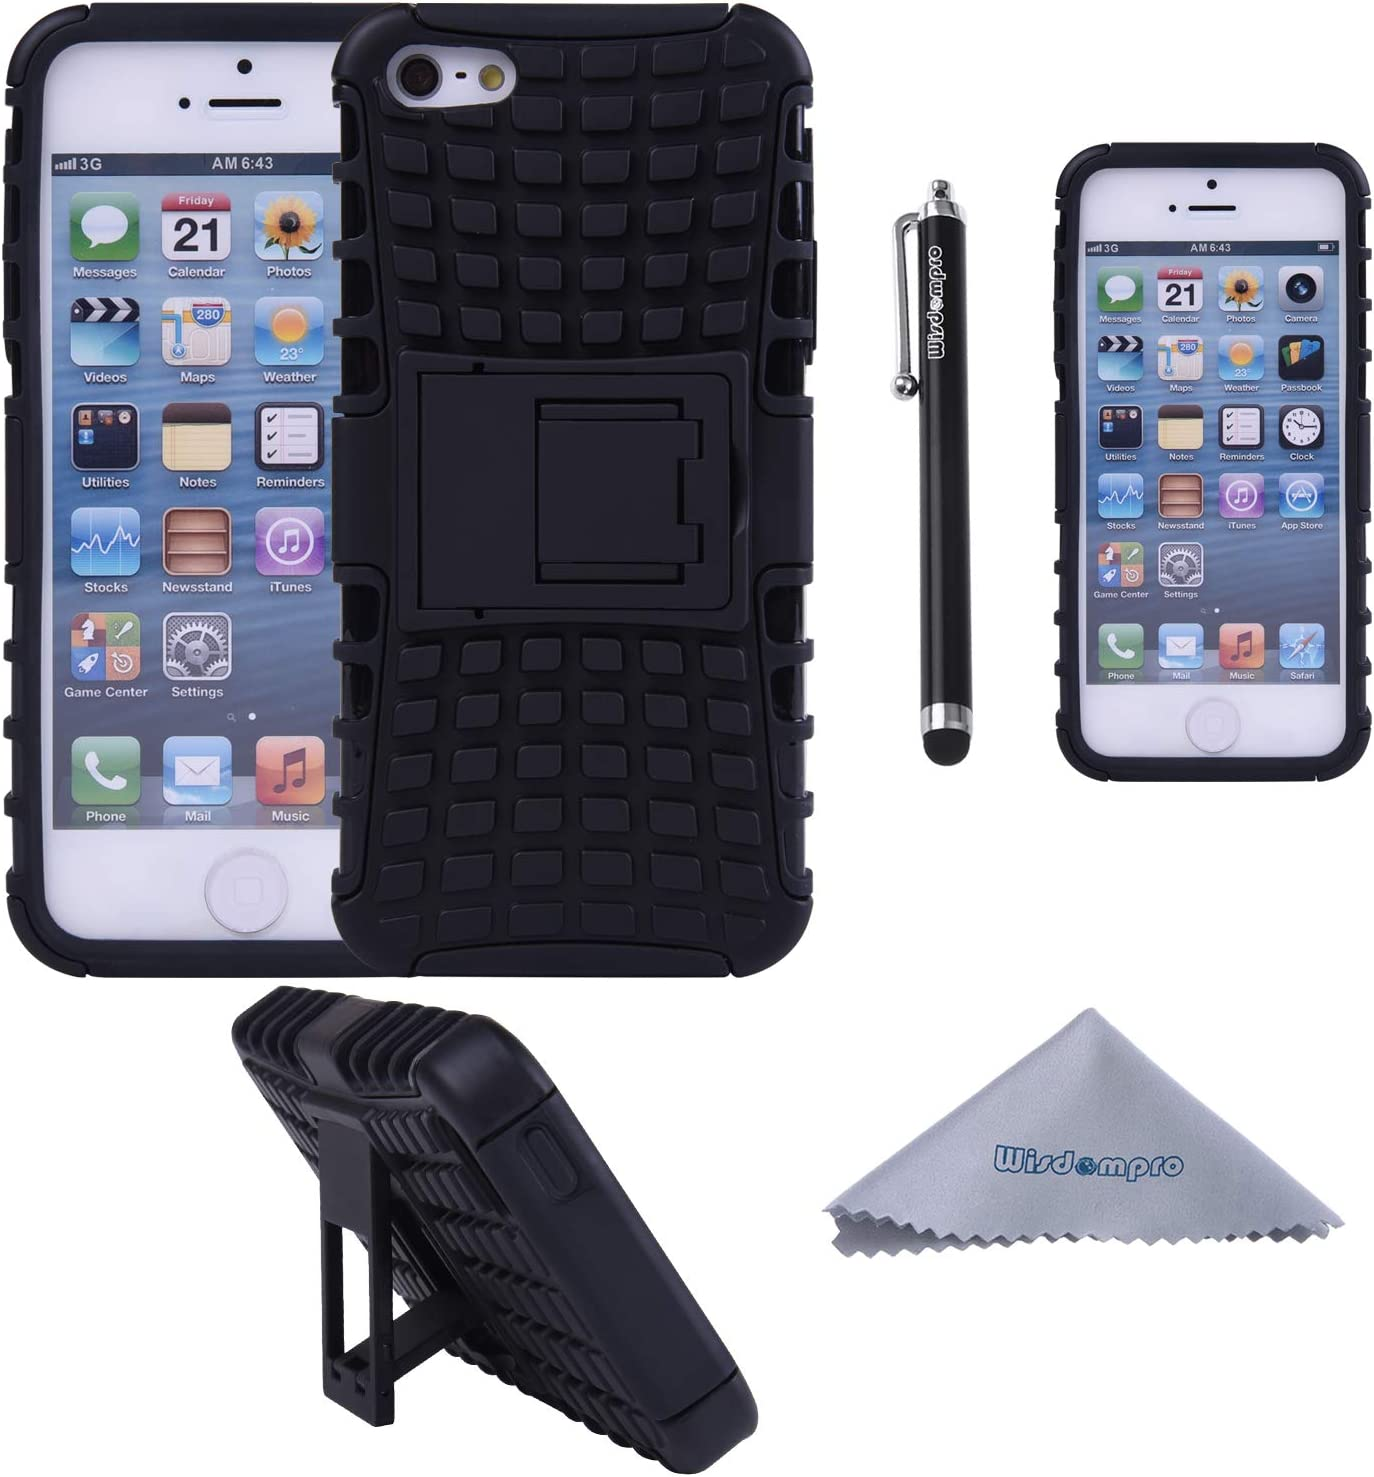 iPhone SE 2016 Case, iPhone 5s 5 Case, Wisdompro 2 Piece in 1 Dual Layer Heavy Duty Hard Soft Hybrid Rugged Protective Case with Foldable Kickstand for Apple iPhone 5/5s/SE 1st Generation- Black/Black